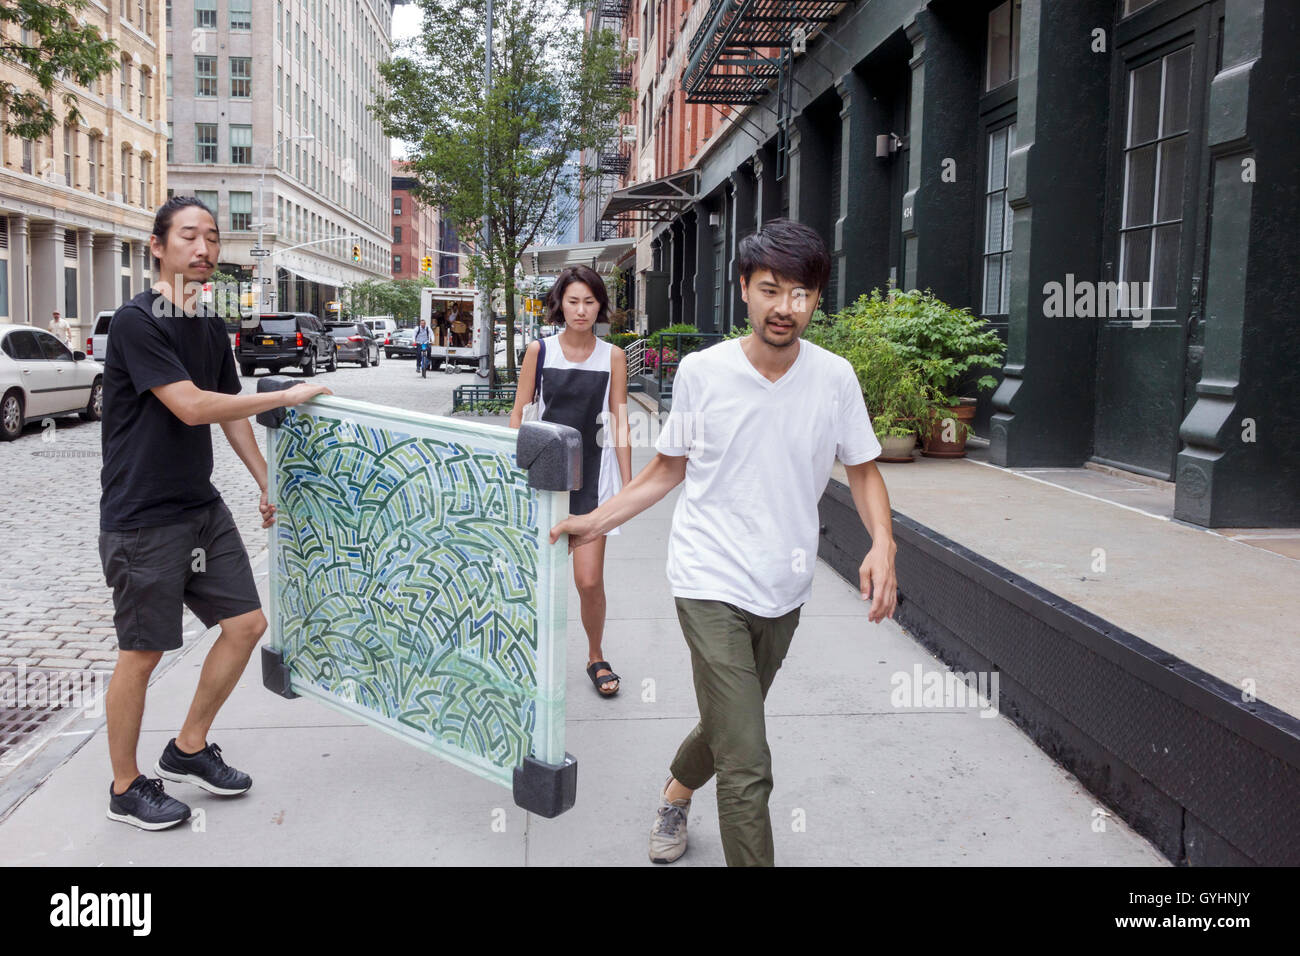 Lower Manhattan New York City NYC NY Tribeca Asian man woman painting framed carrying walking street scene young Stock Photo